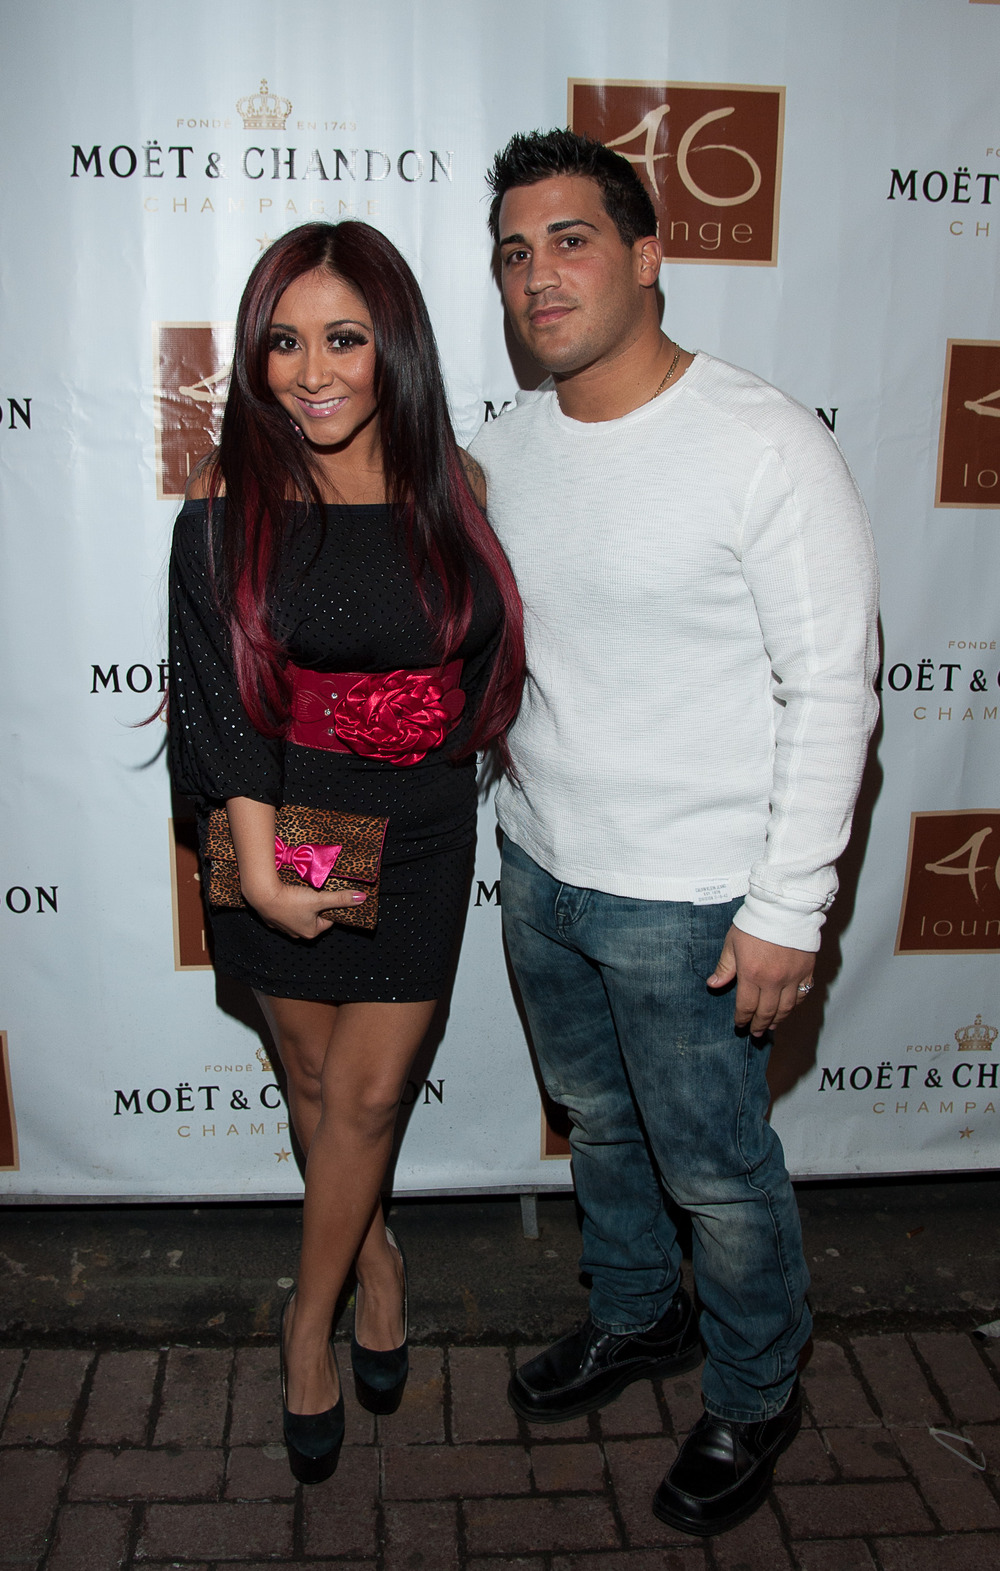 Snooki Fights Back Against Bogus Claim That She's Drinking & Dieting While Pregnant – Exclusive